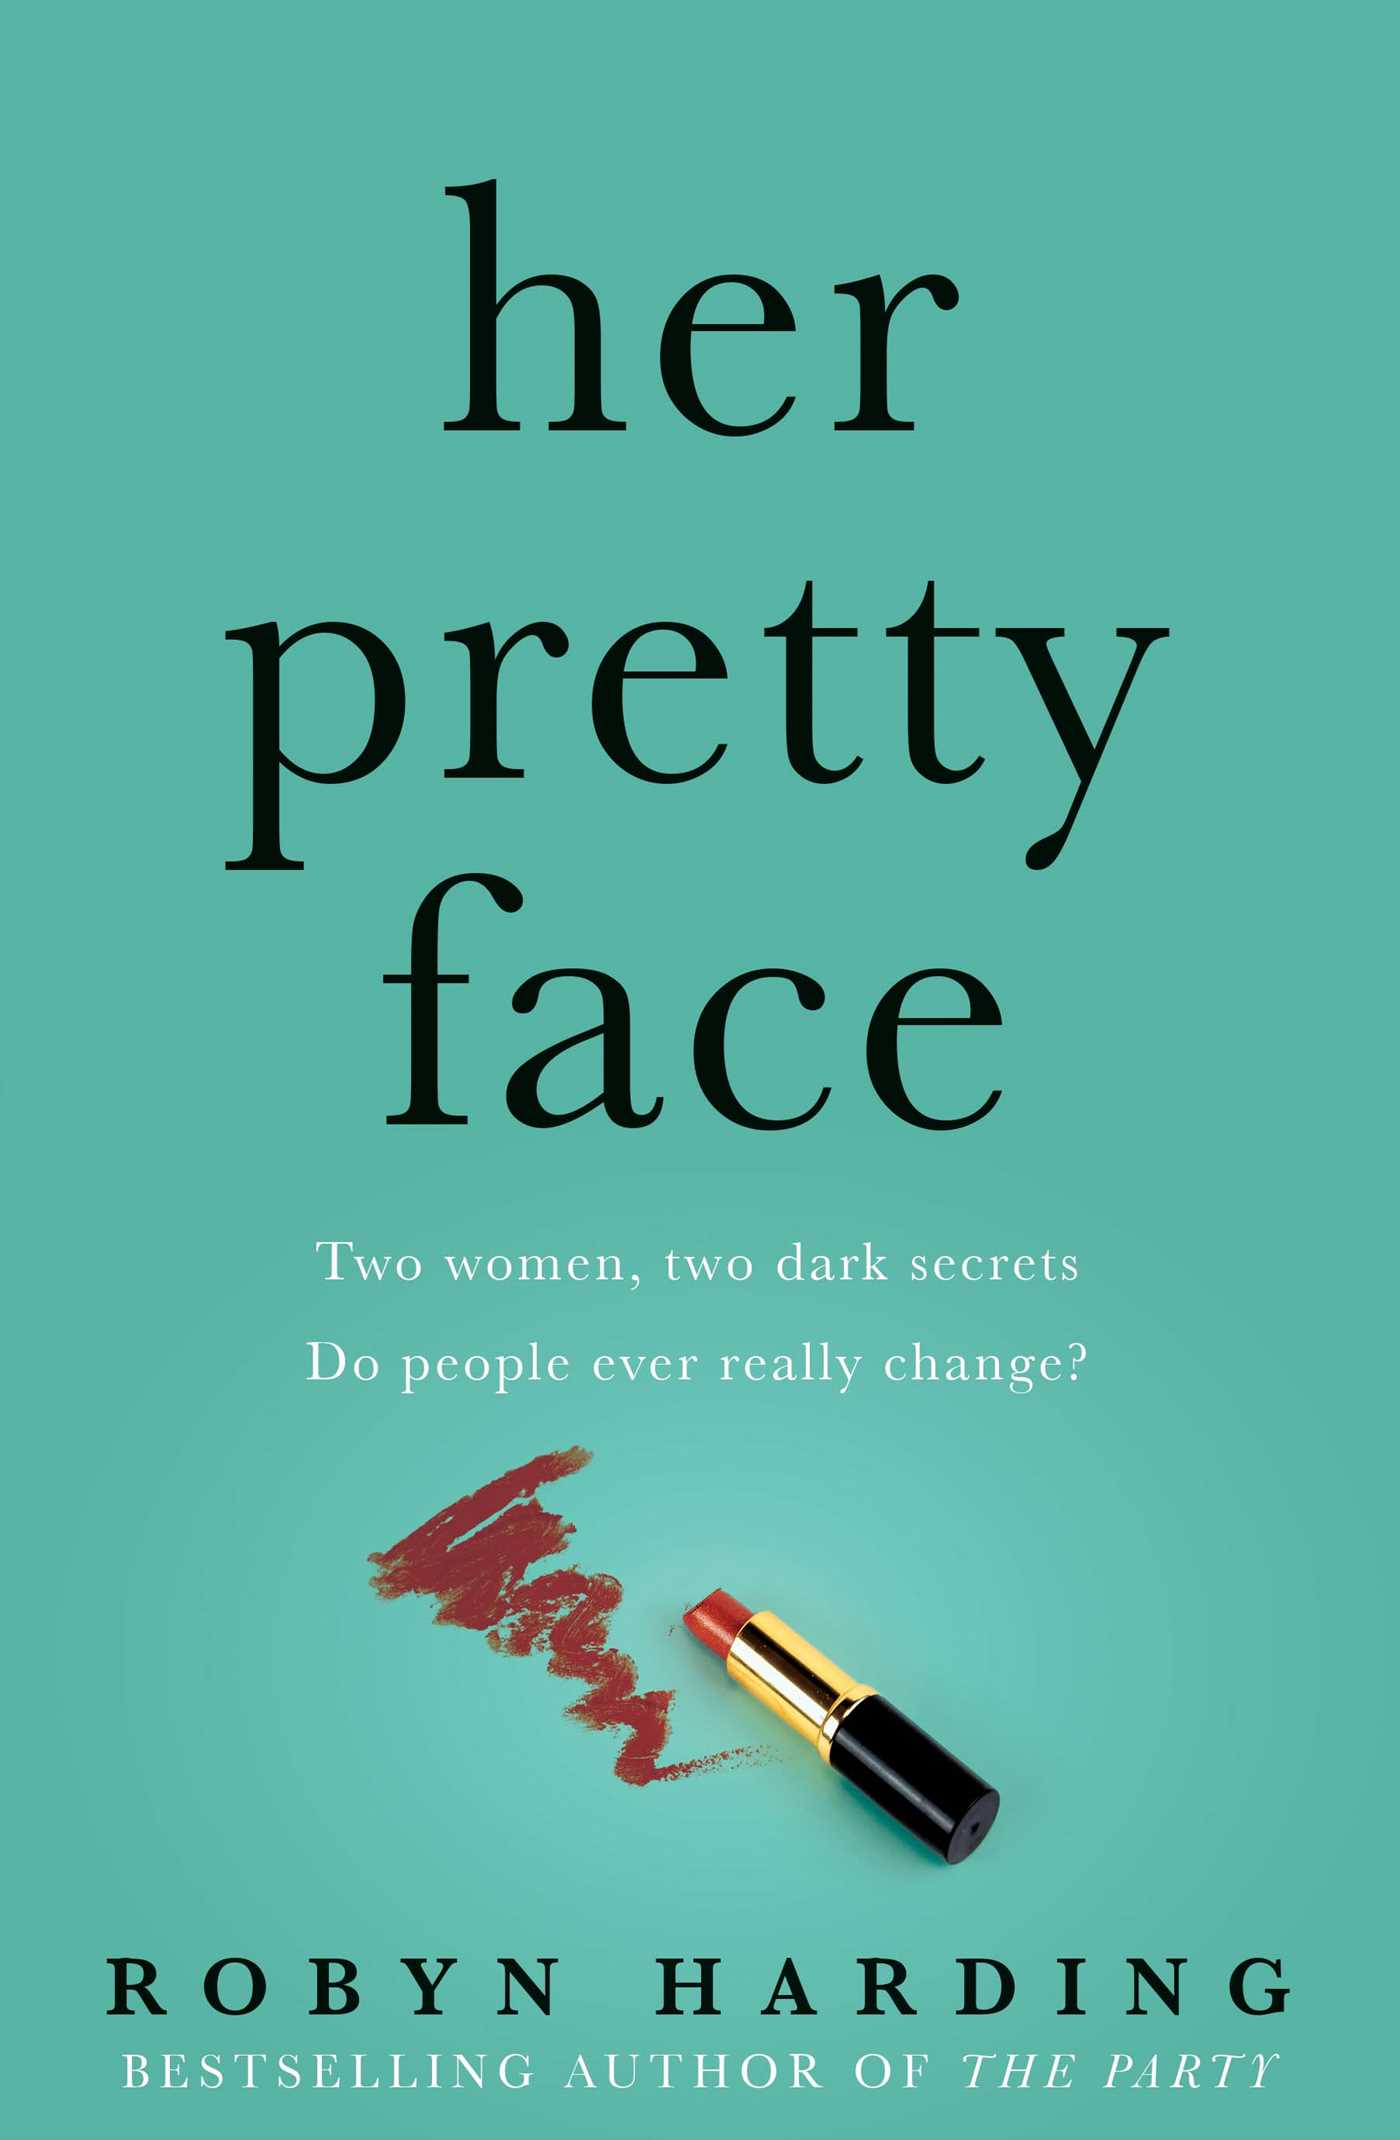 Pictures Of Pretty Book Covers ~ Her pretty face book by robyn harding official publisher page